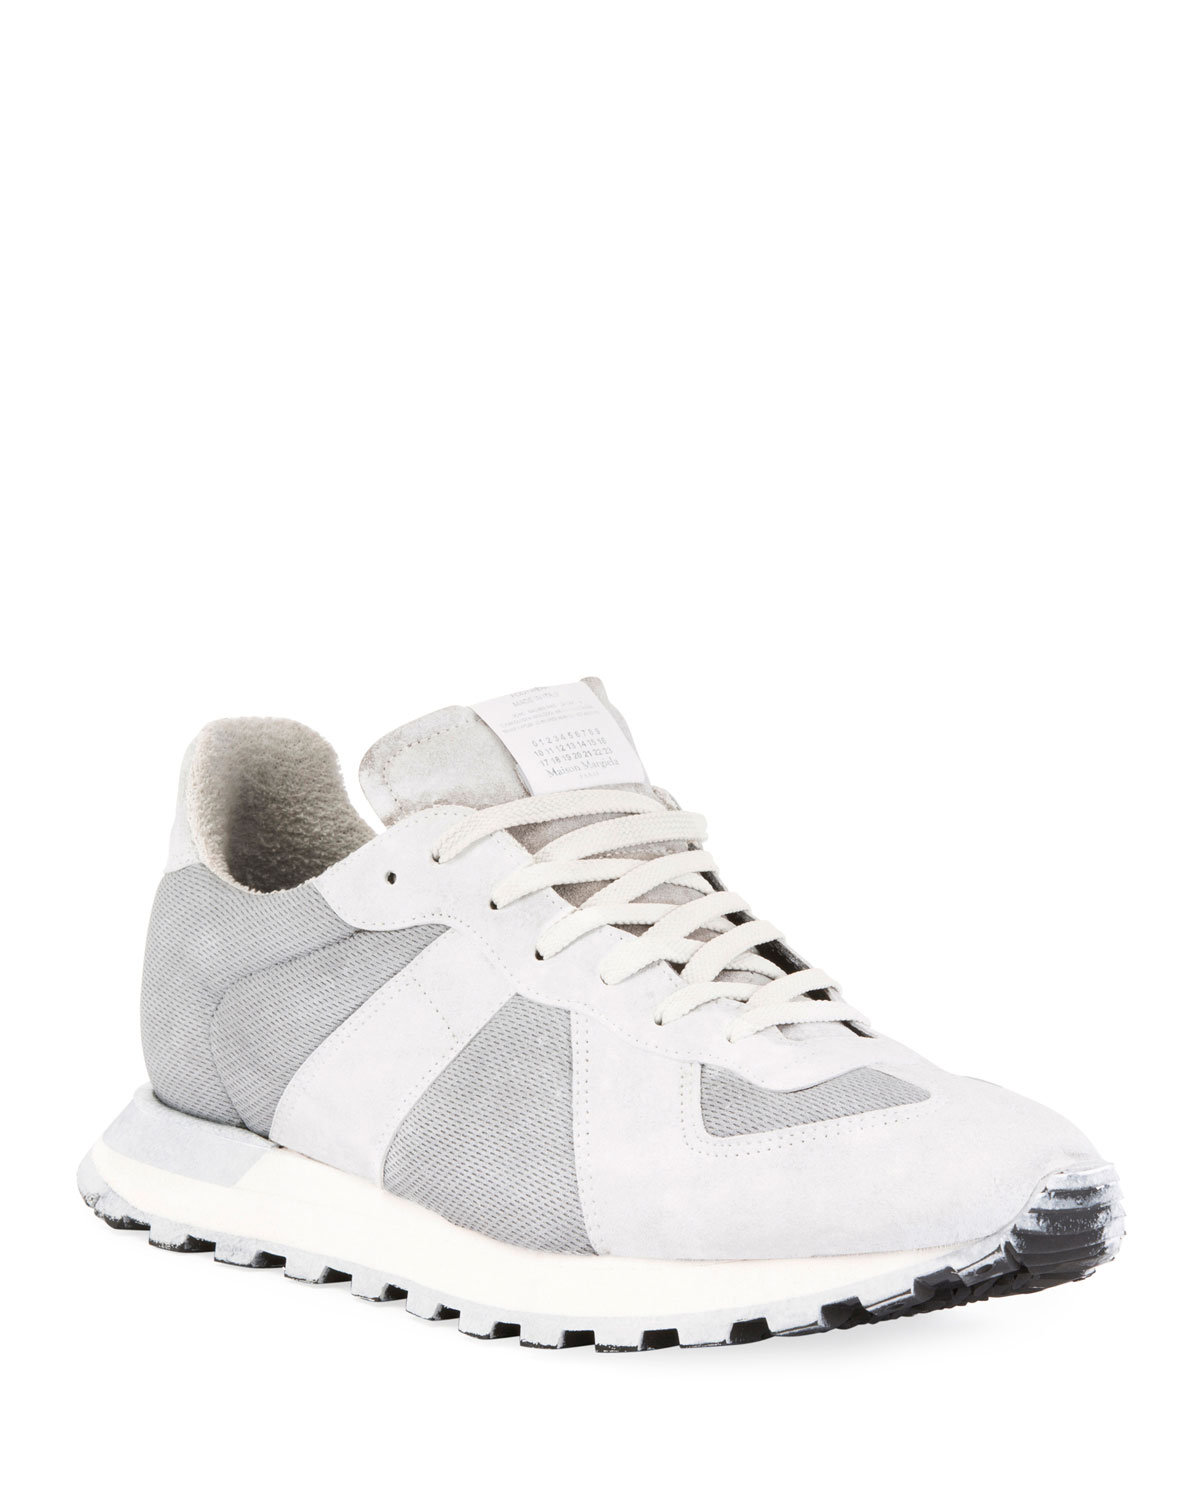 370d3ab1e76 Men's Replica Runner Leather & Suede Sneakers